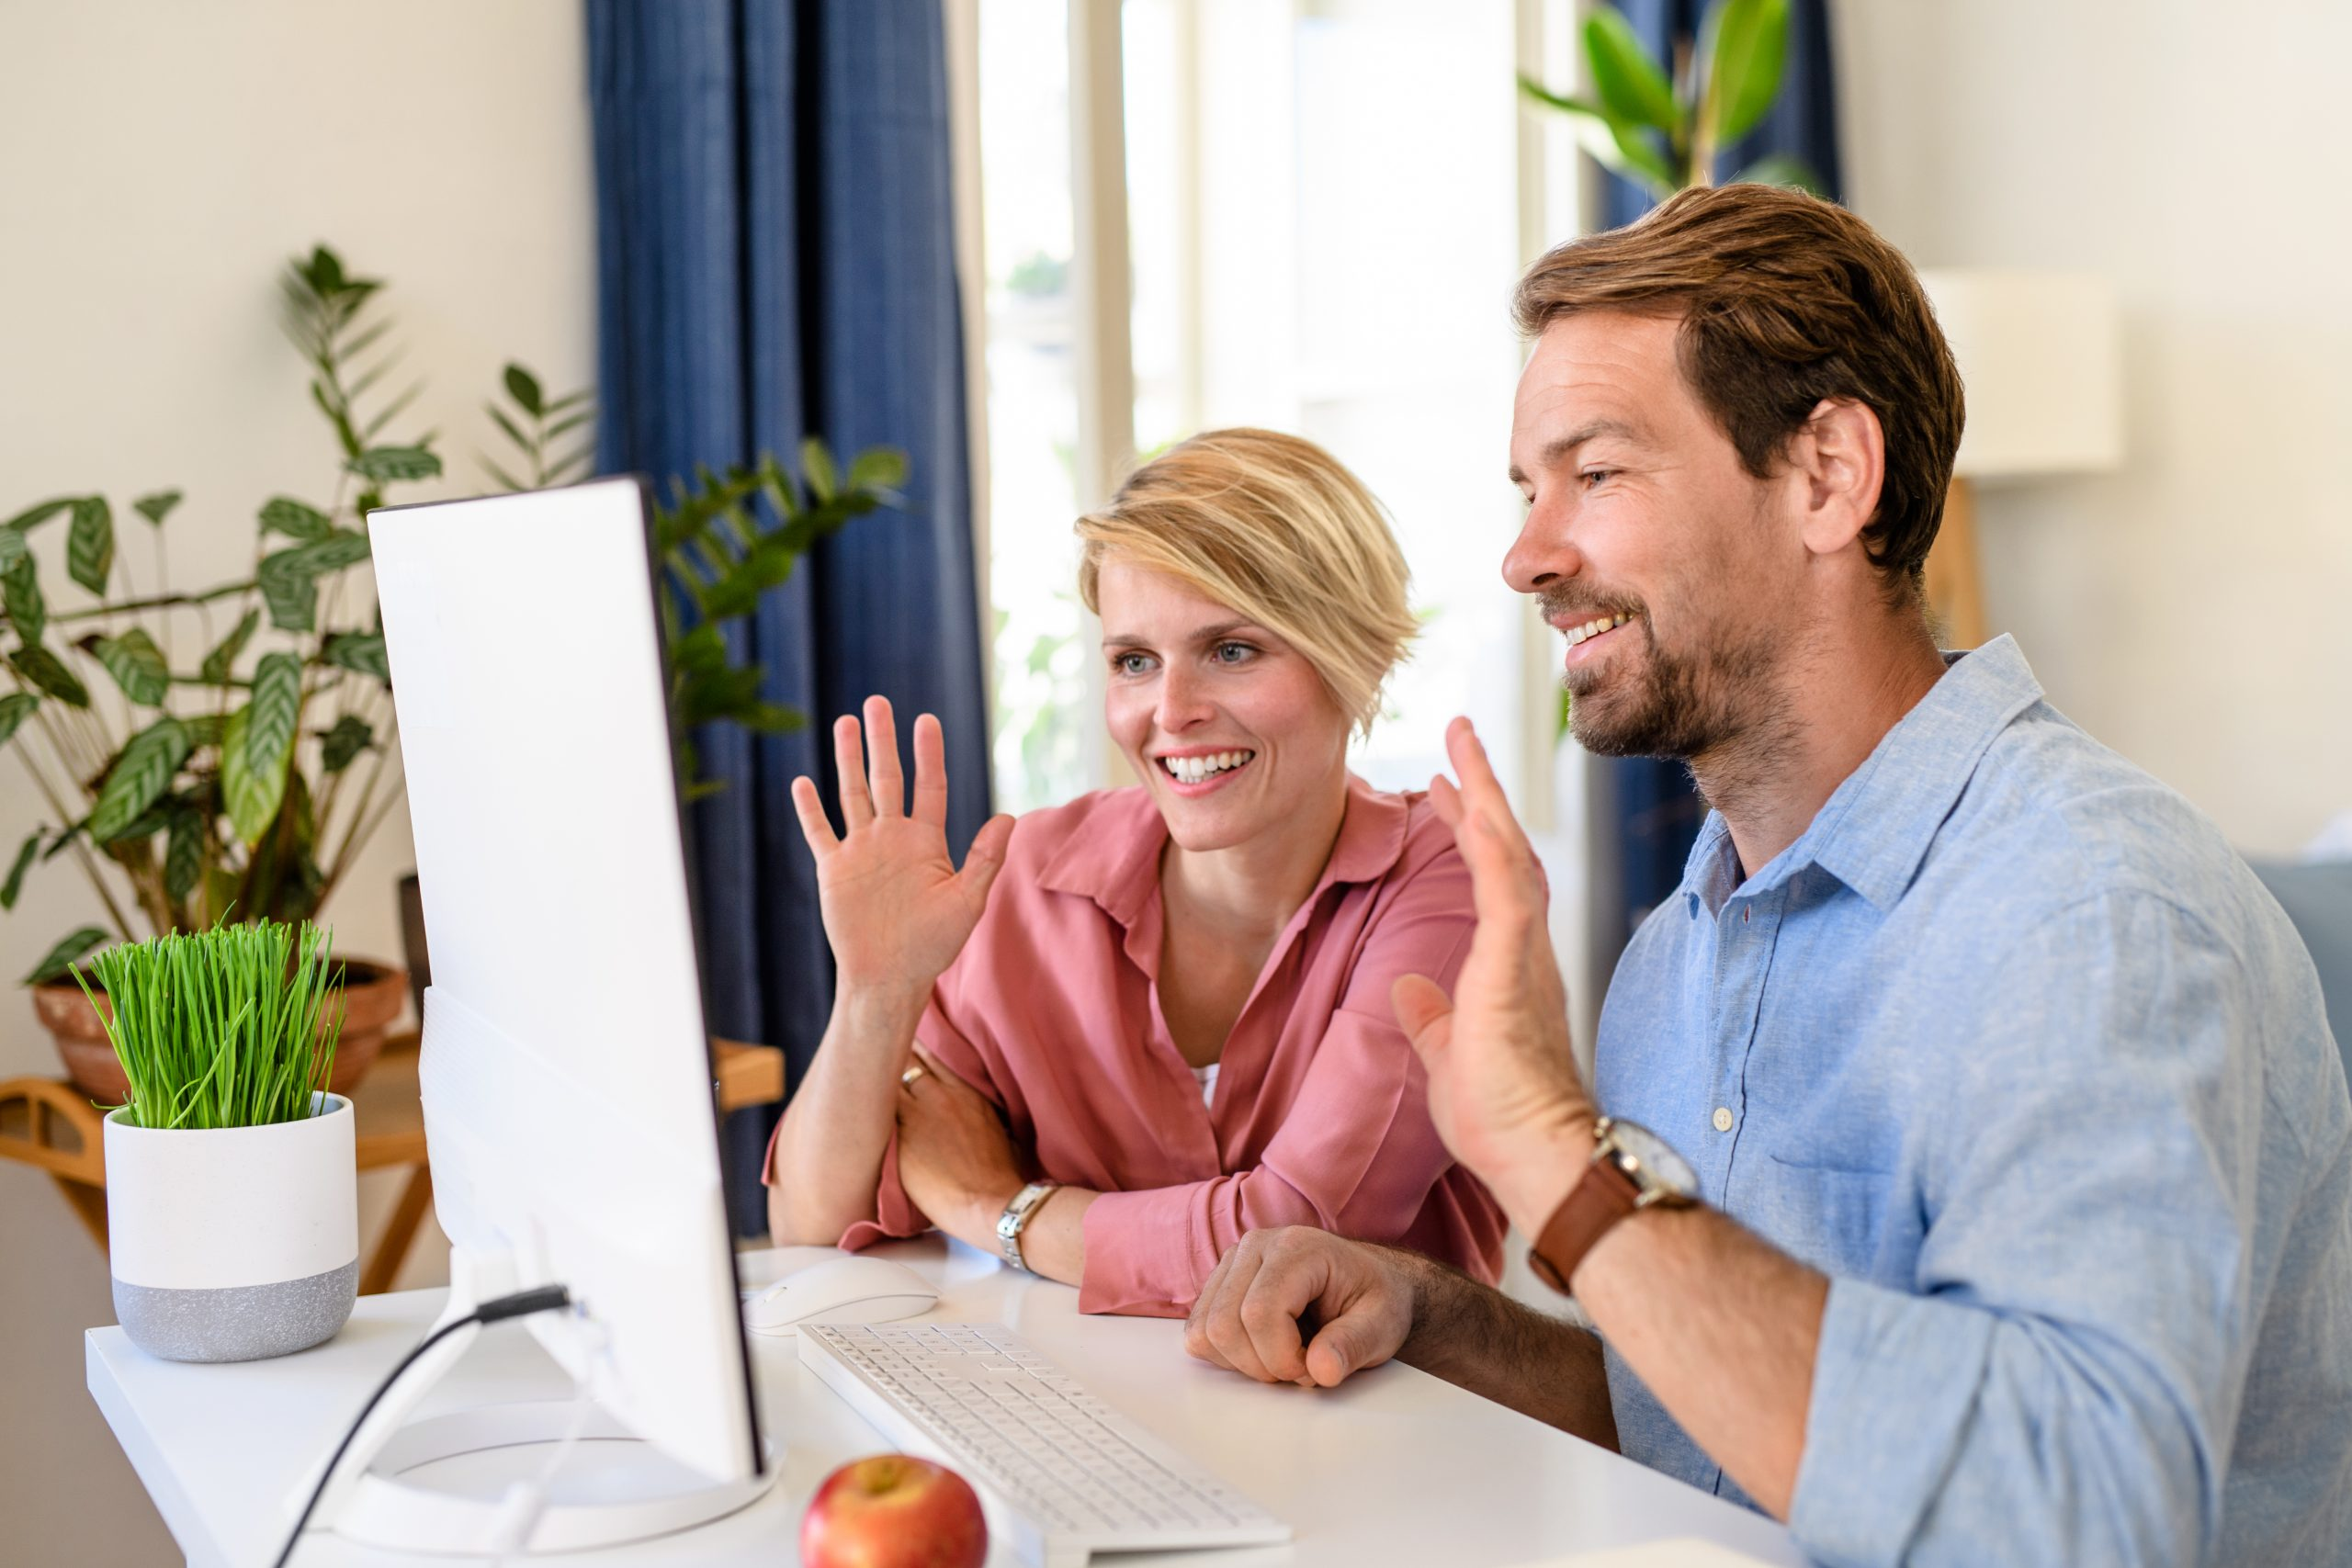 Two people using video conferencing